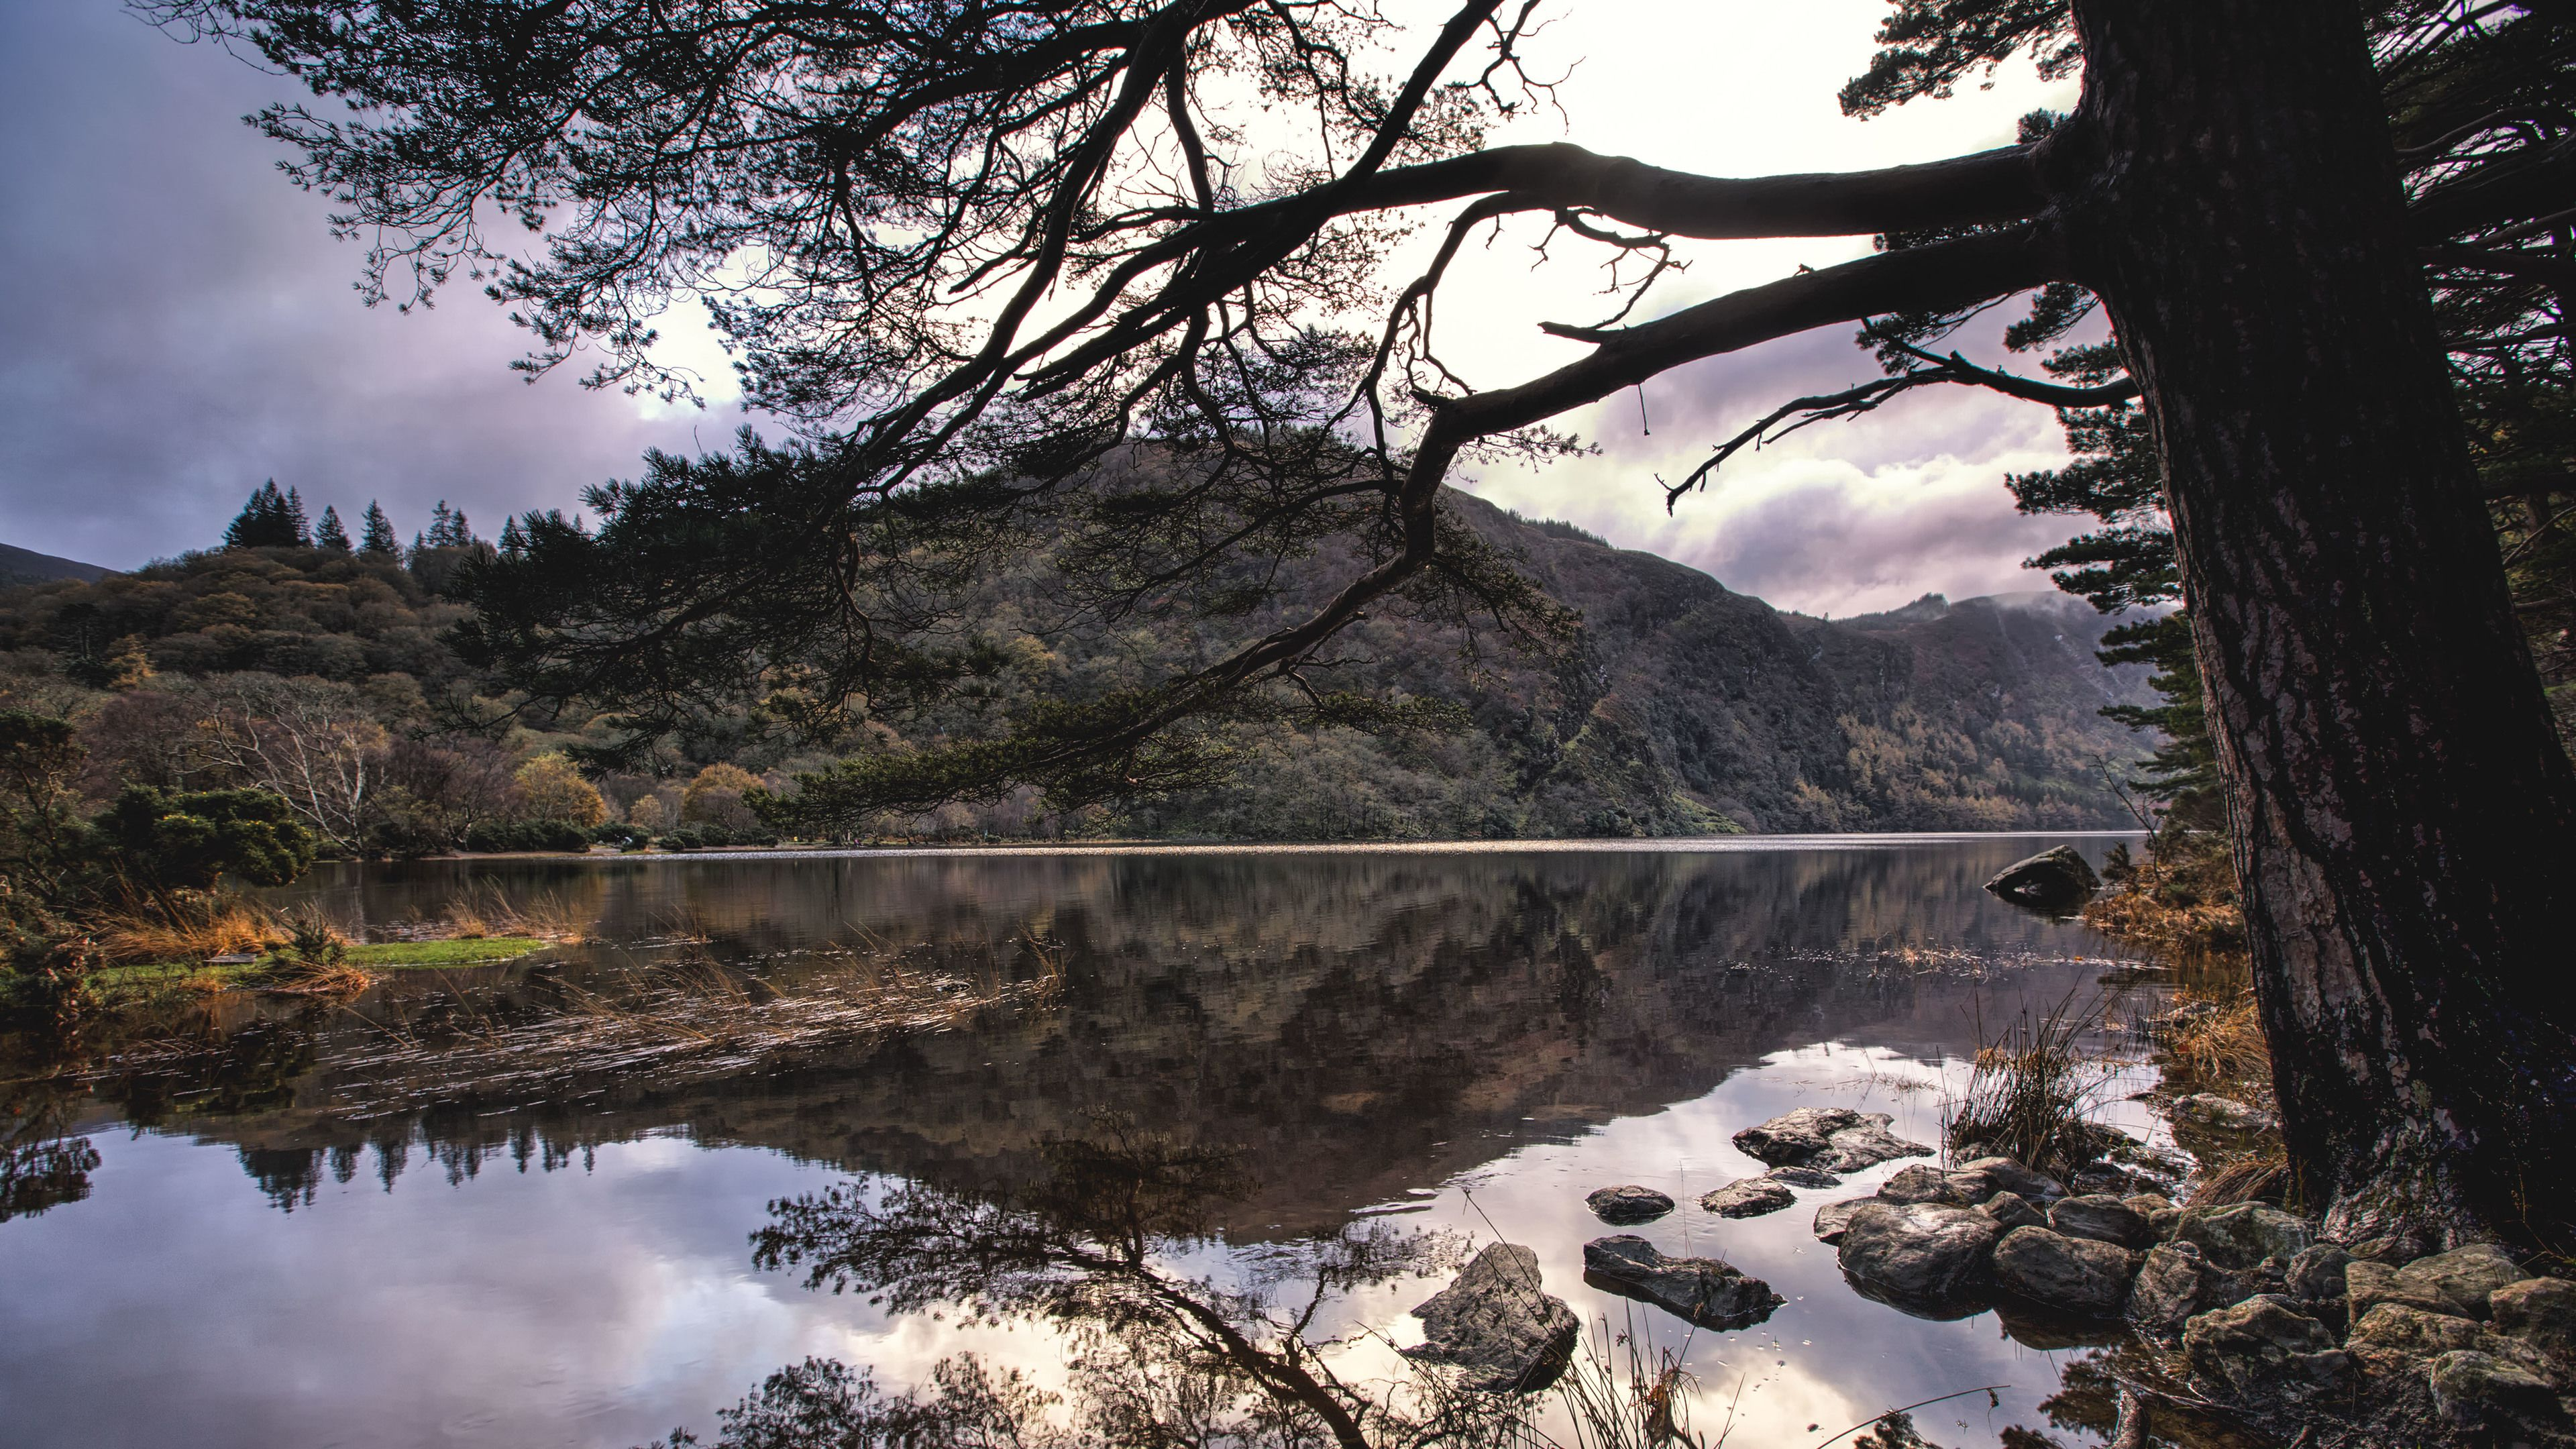 River view of Wicklow Mountains at sunset.